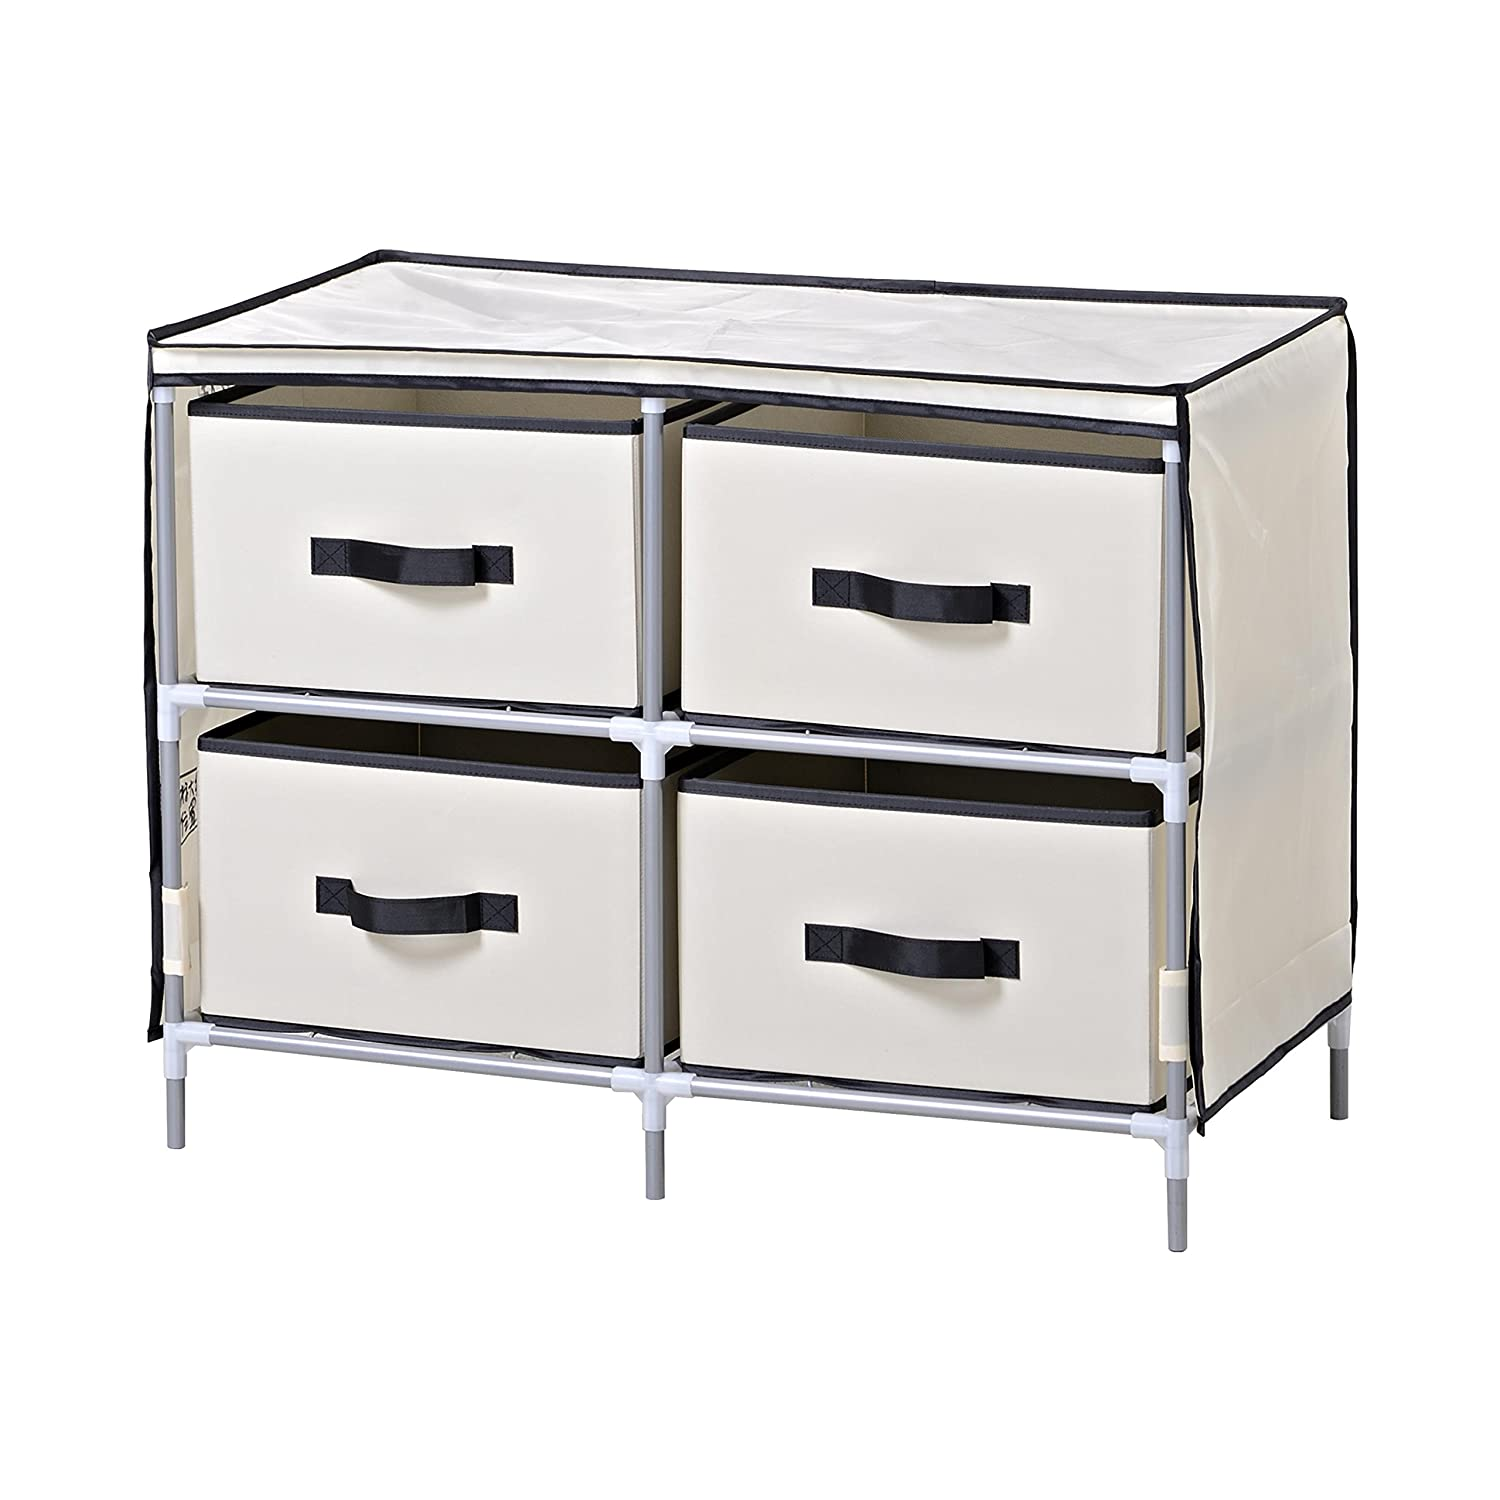 Homestar ZH141796BE 4-Drawer Fabric Dresser